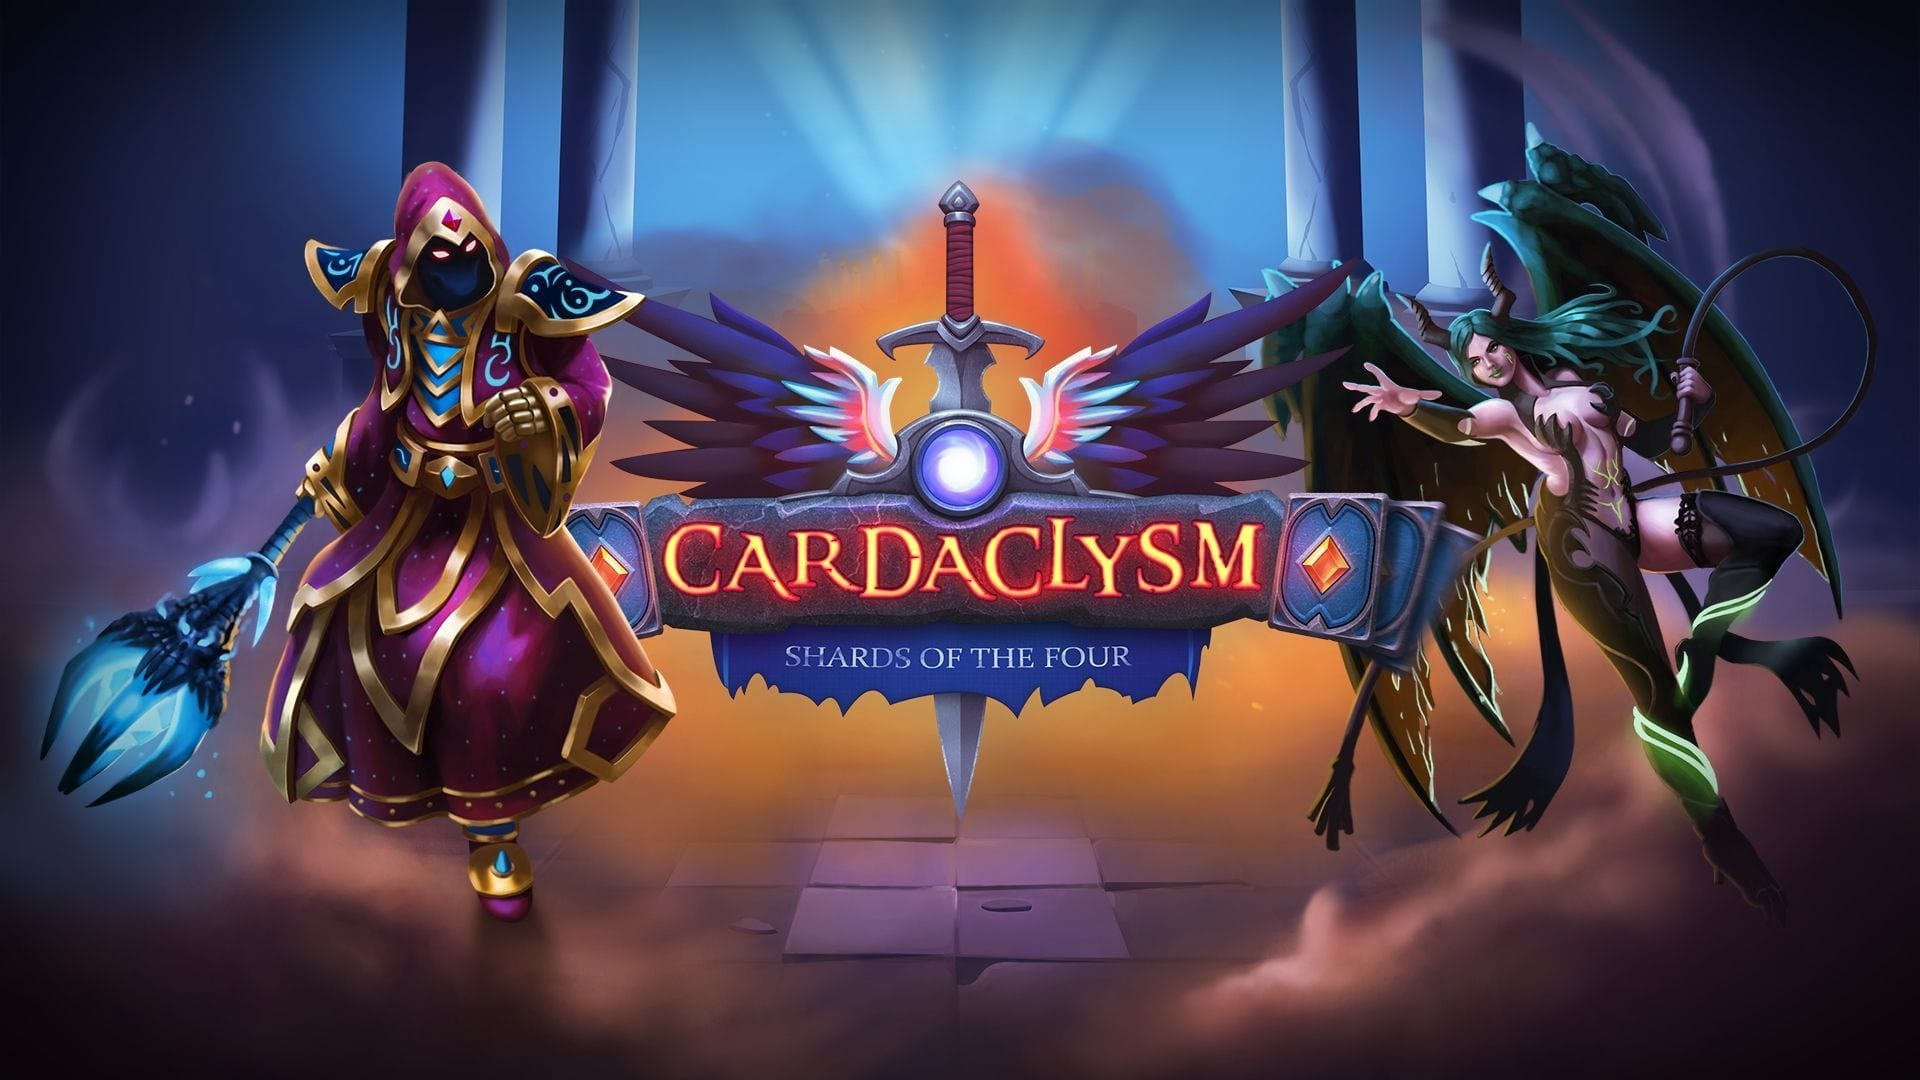 ardaclysm: Shards of the Four